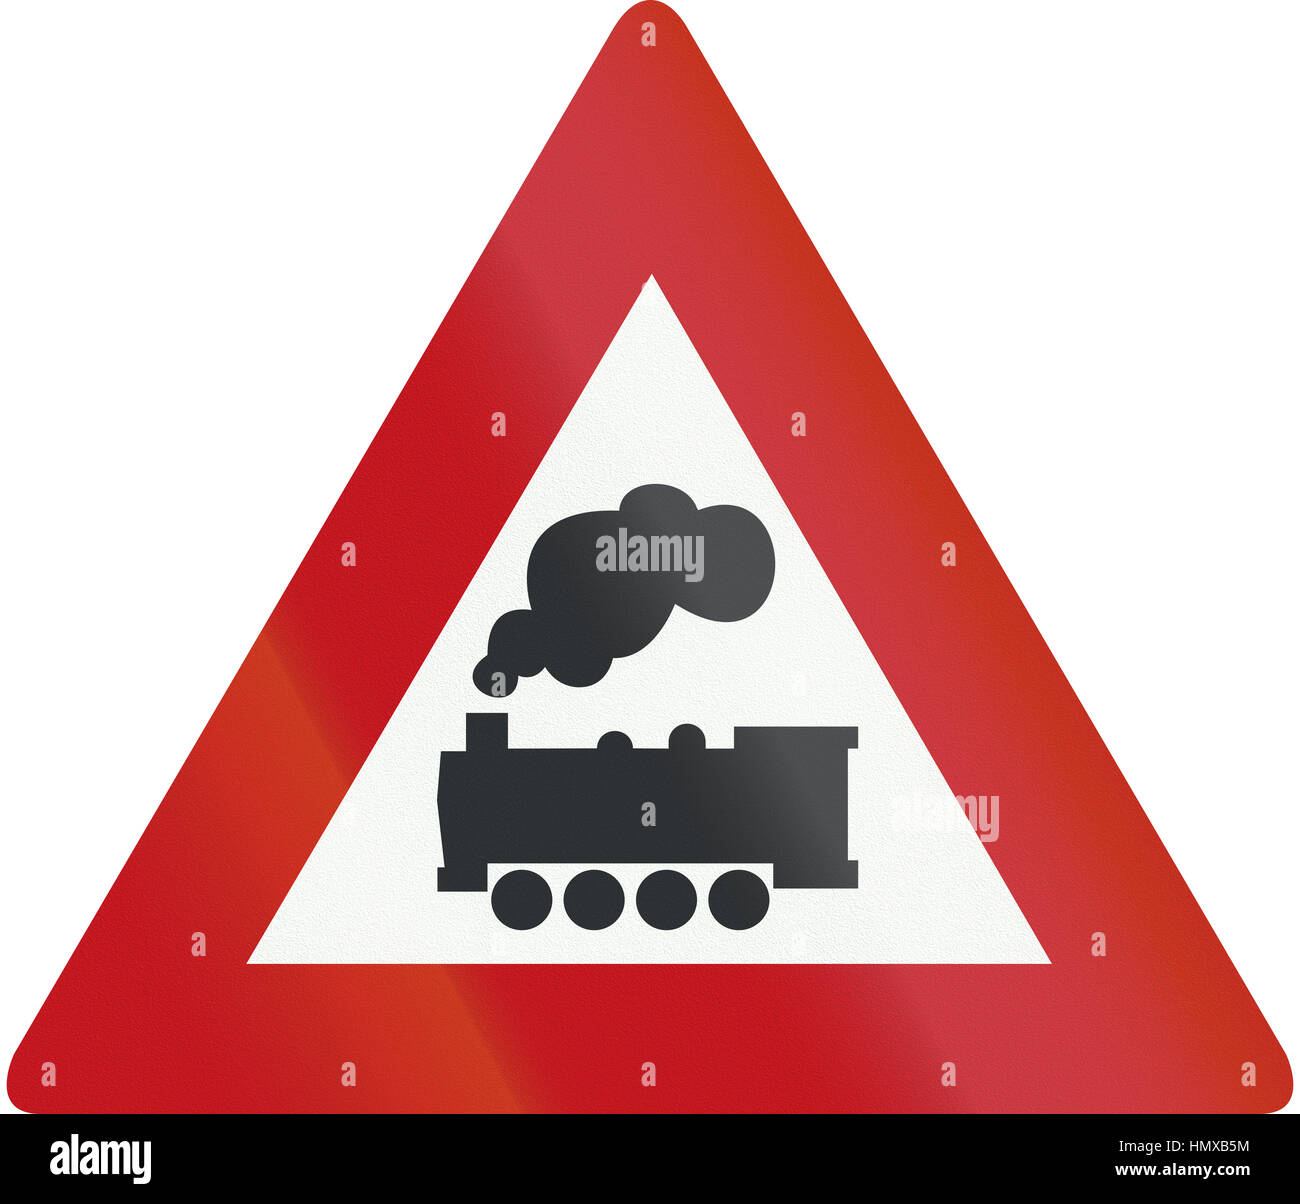 Netherlands road sign j11 level crossing without barrier or gates ahead stock image